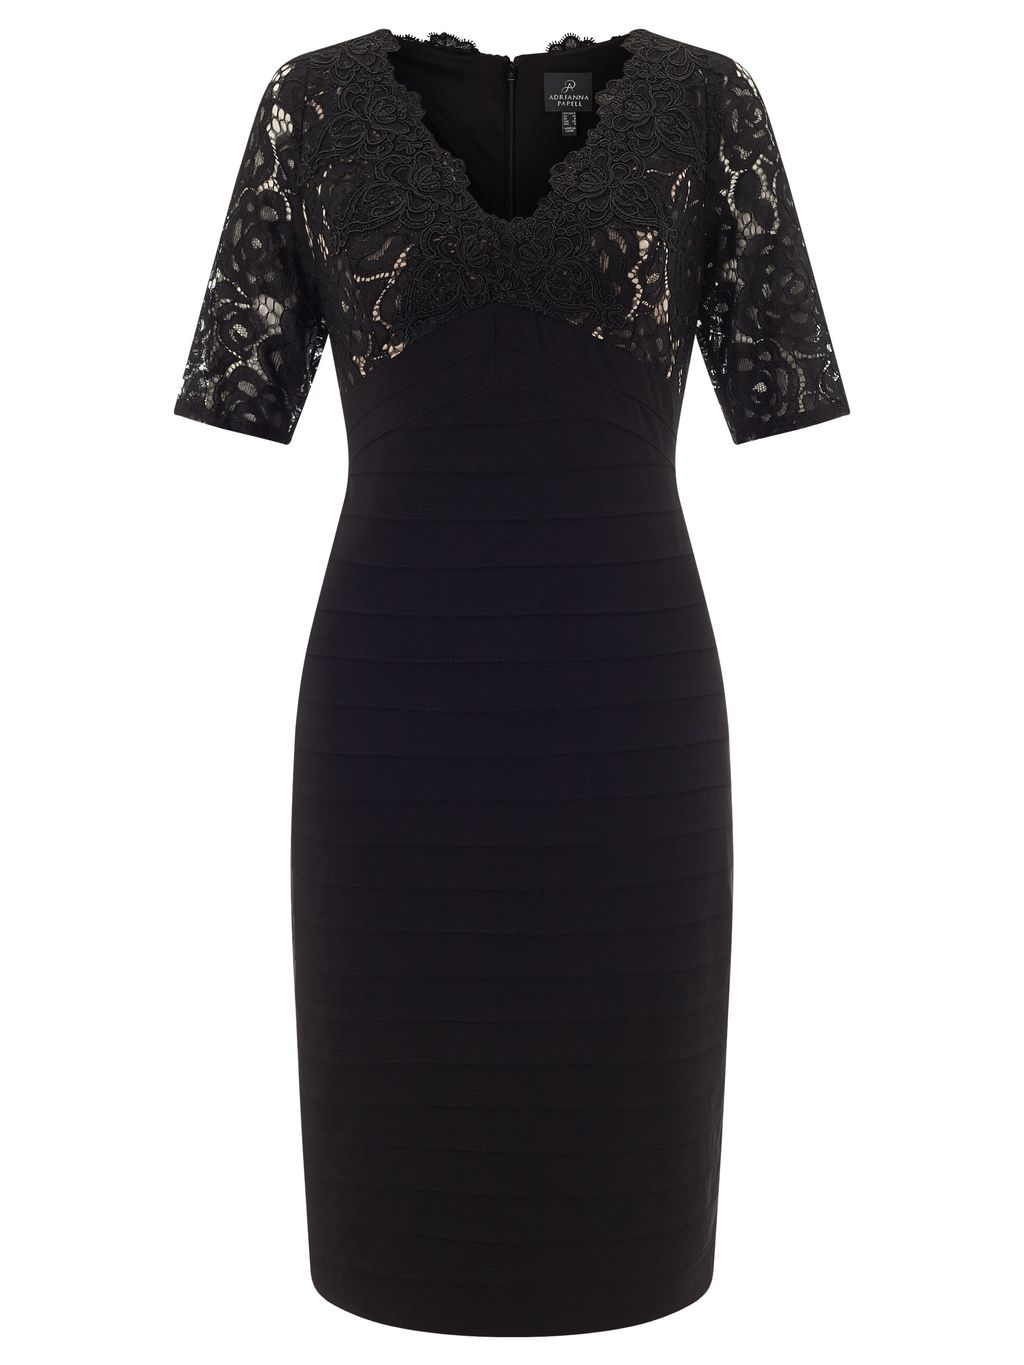 Lace Dress, Multi Coloured - neckline: v-neck; fit: tight; pattern: plain; style: bodycon; bust detail: sheer at bust; predominant colour: black; occasions: evening; length: on the knee; fibres: polyester/polyamide - stretch; sleeve length: short sleeve; sleeve style: standard; texture group: jersey - clingy; pattern type: fabric; embellishment: lace; season: s/s 2016; wardrobe: event